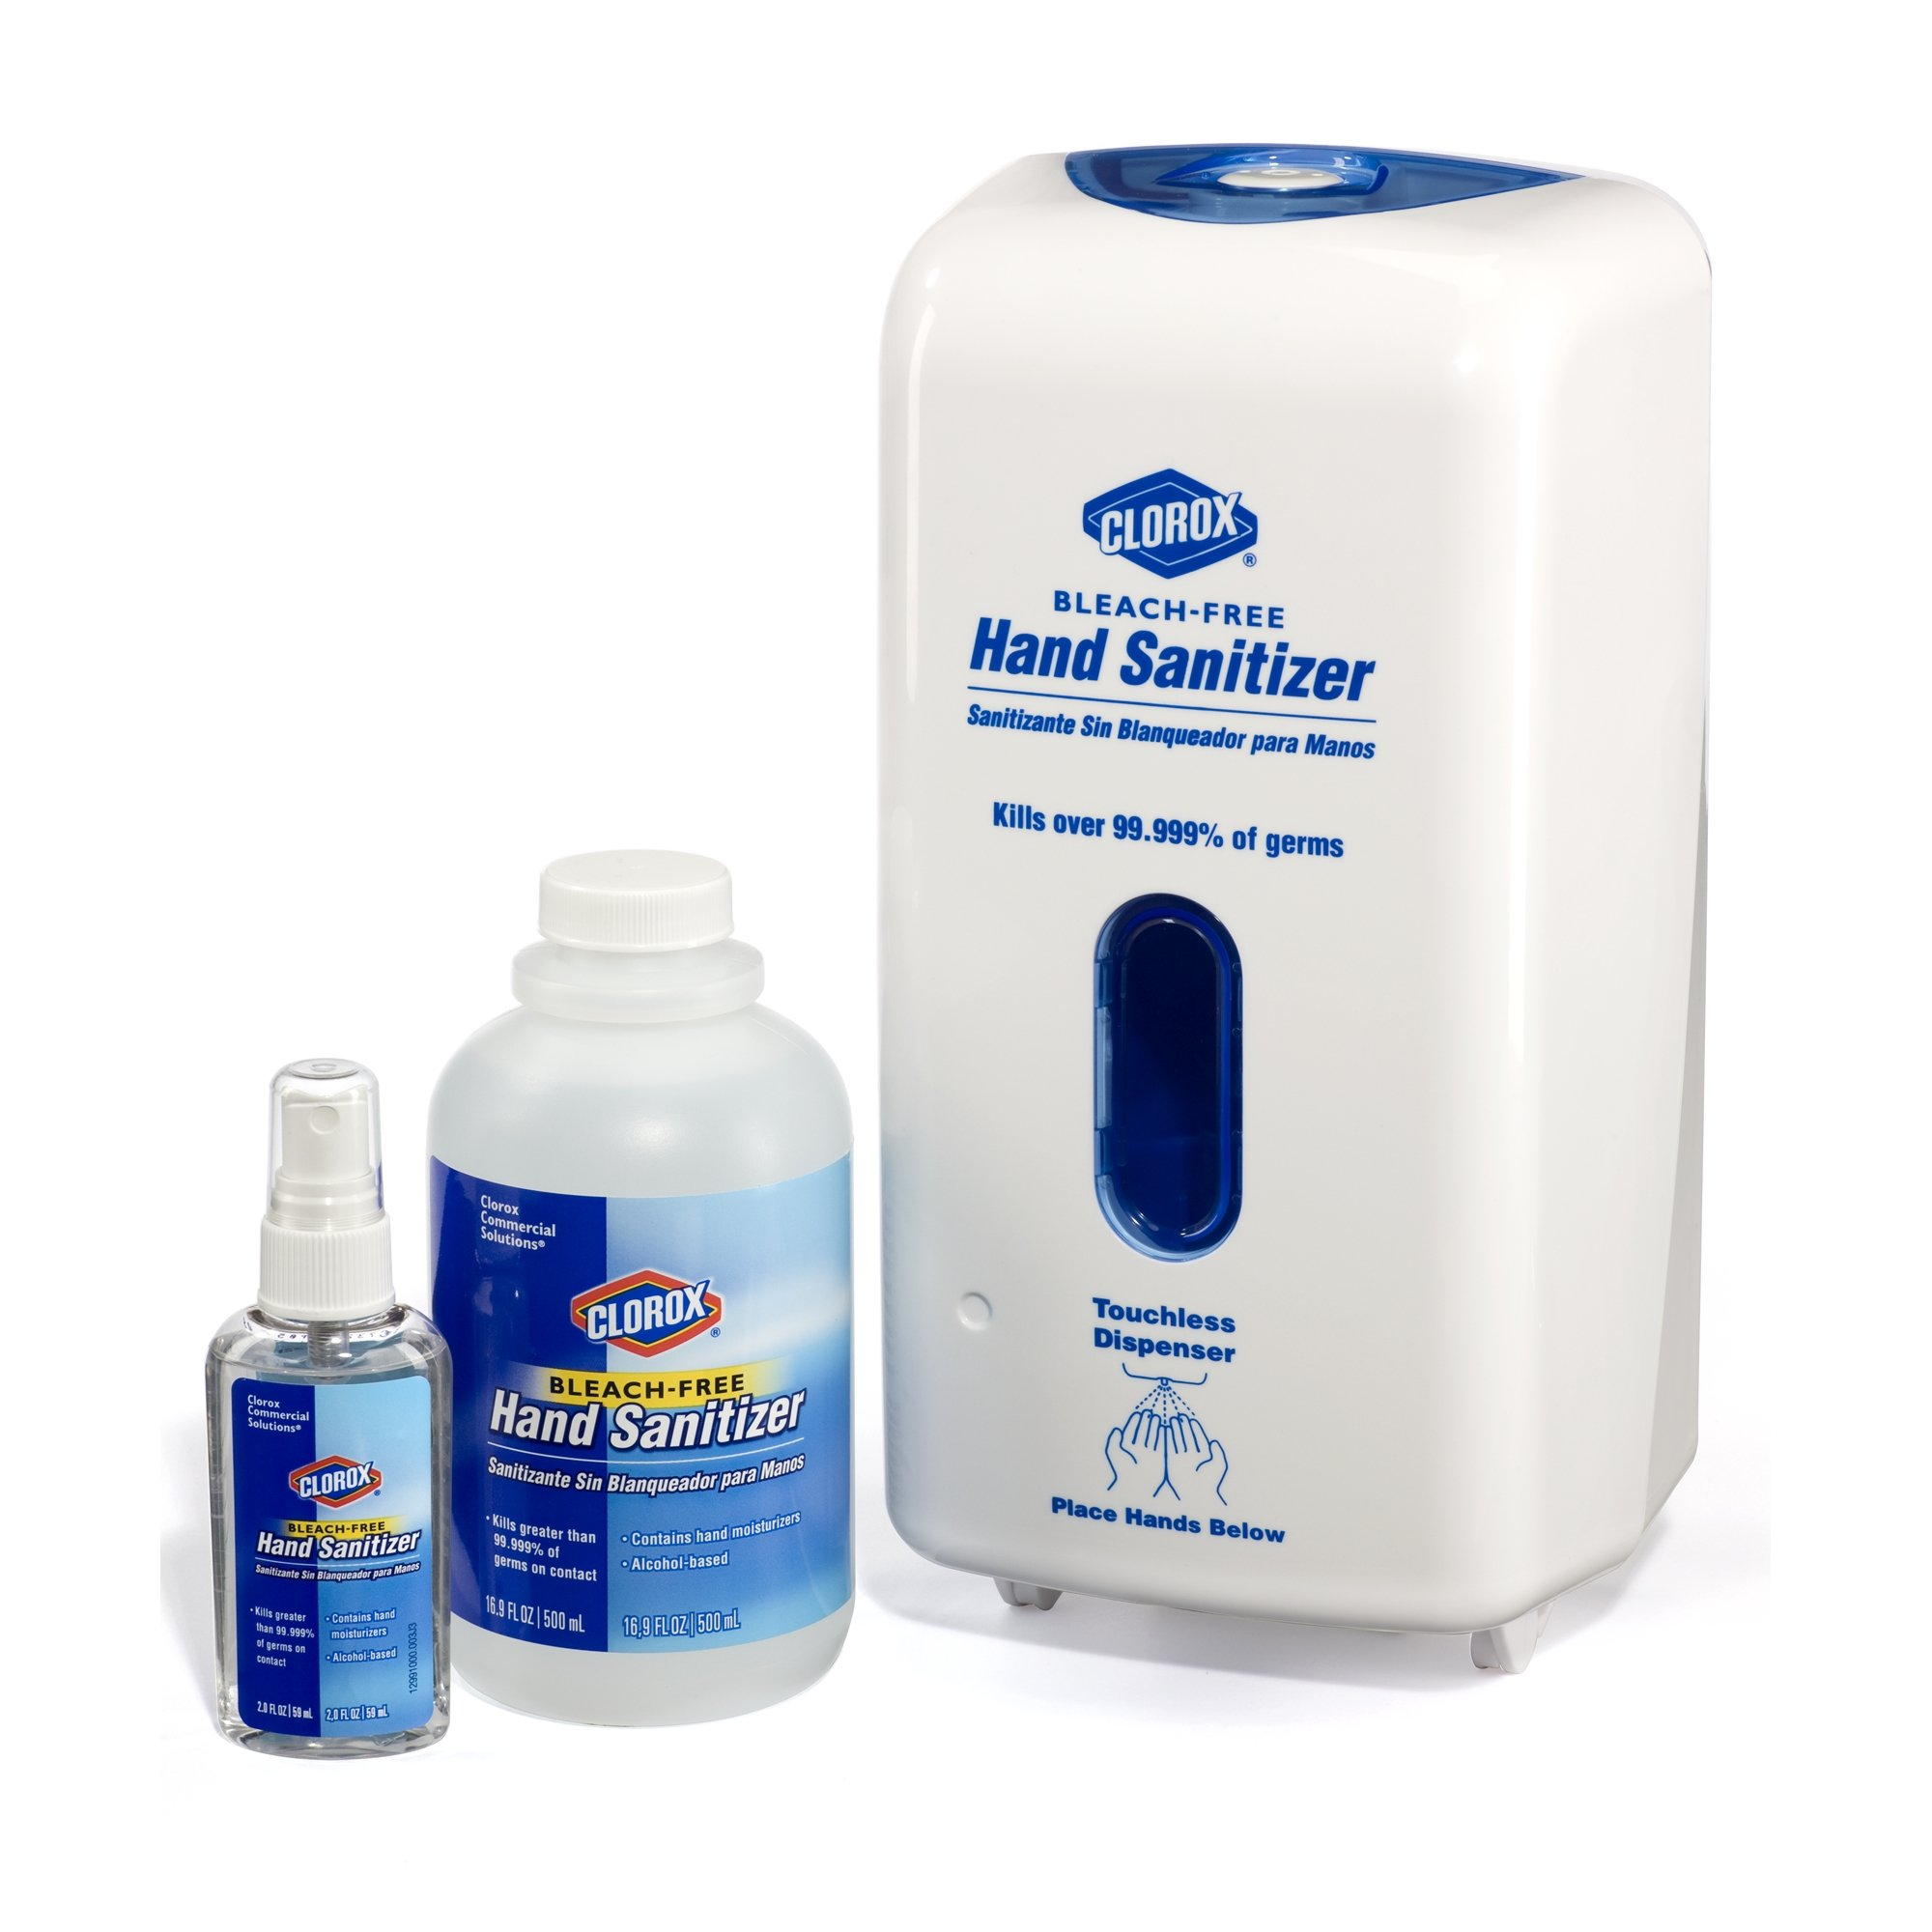 Clorox 30243 Commercial Solutions Touchless Hand Sanitizing Spray Dispenser Refill, 1000 ml by Clorox (Image #5)